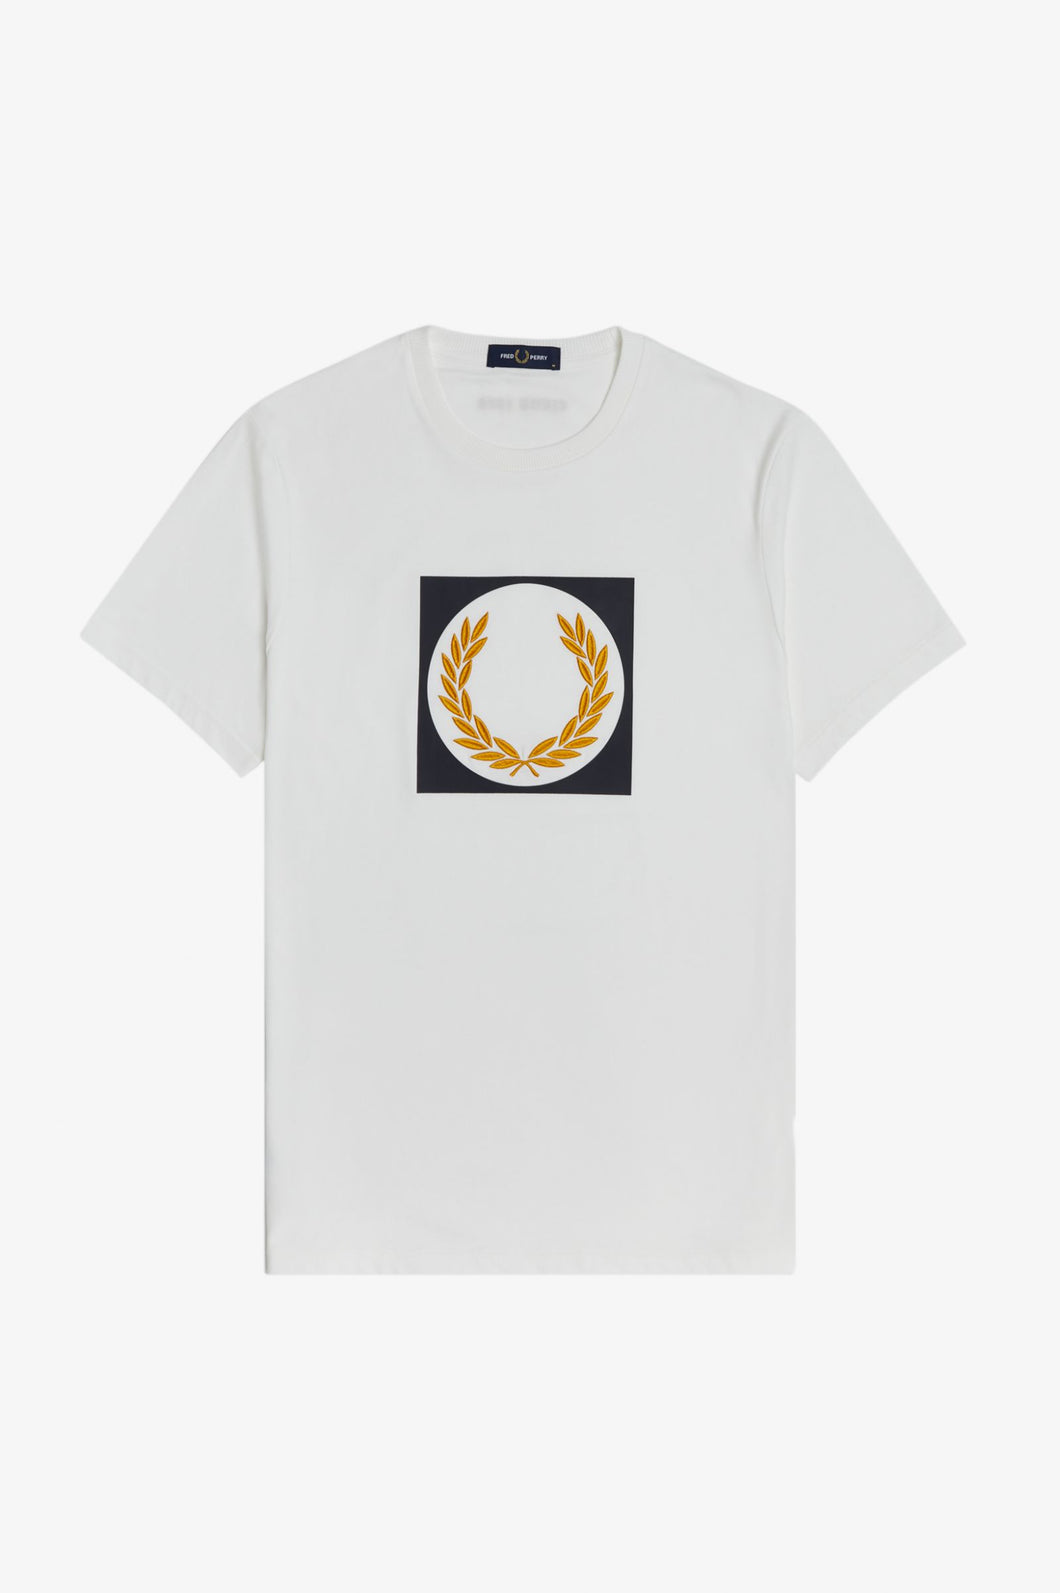 Fred Perry Laurel Wreath Graphic T-Shirt M1655 Snow White